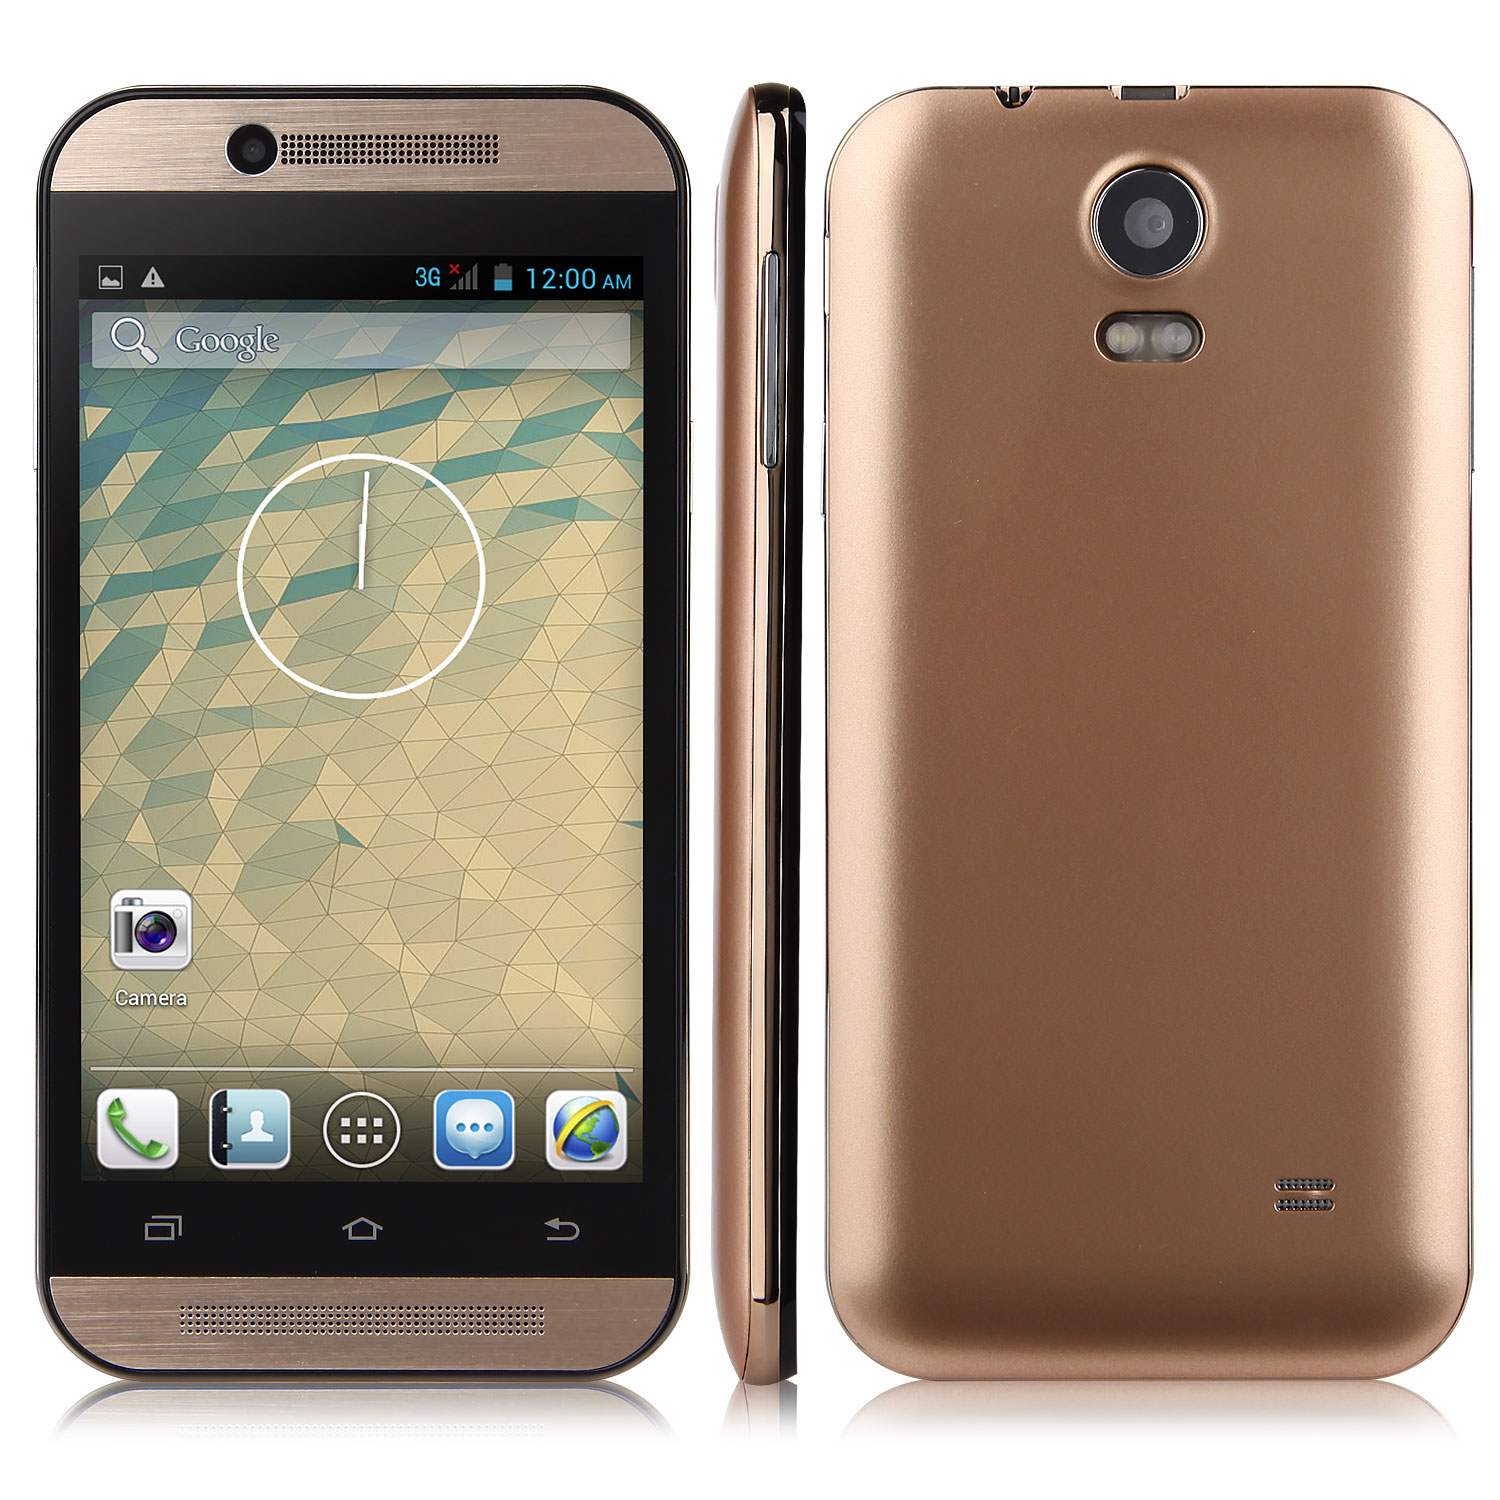 Tengda Mini M8 Smartphone Android 4.2 MTK6572W 4.3 Inch 3G GPS Golden